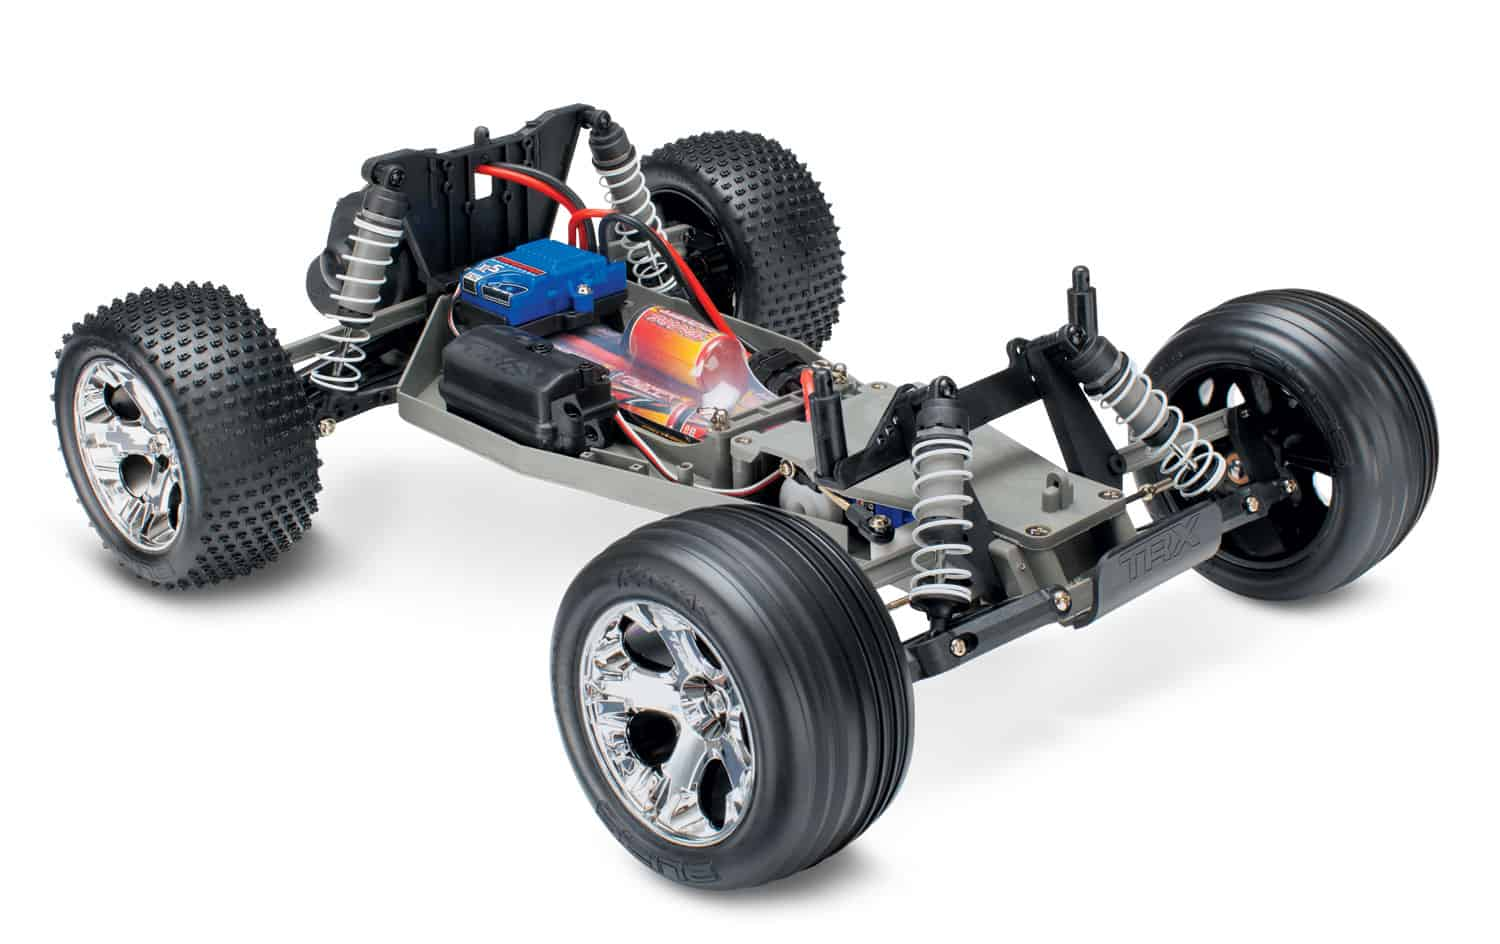 Traxxas Rustler Xl 5 1 10 Stadium Truck Rtr 2wd W Battery And Additionally Slash 4x4 Slipper Clutch On Parts Diagram Charger